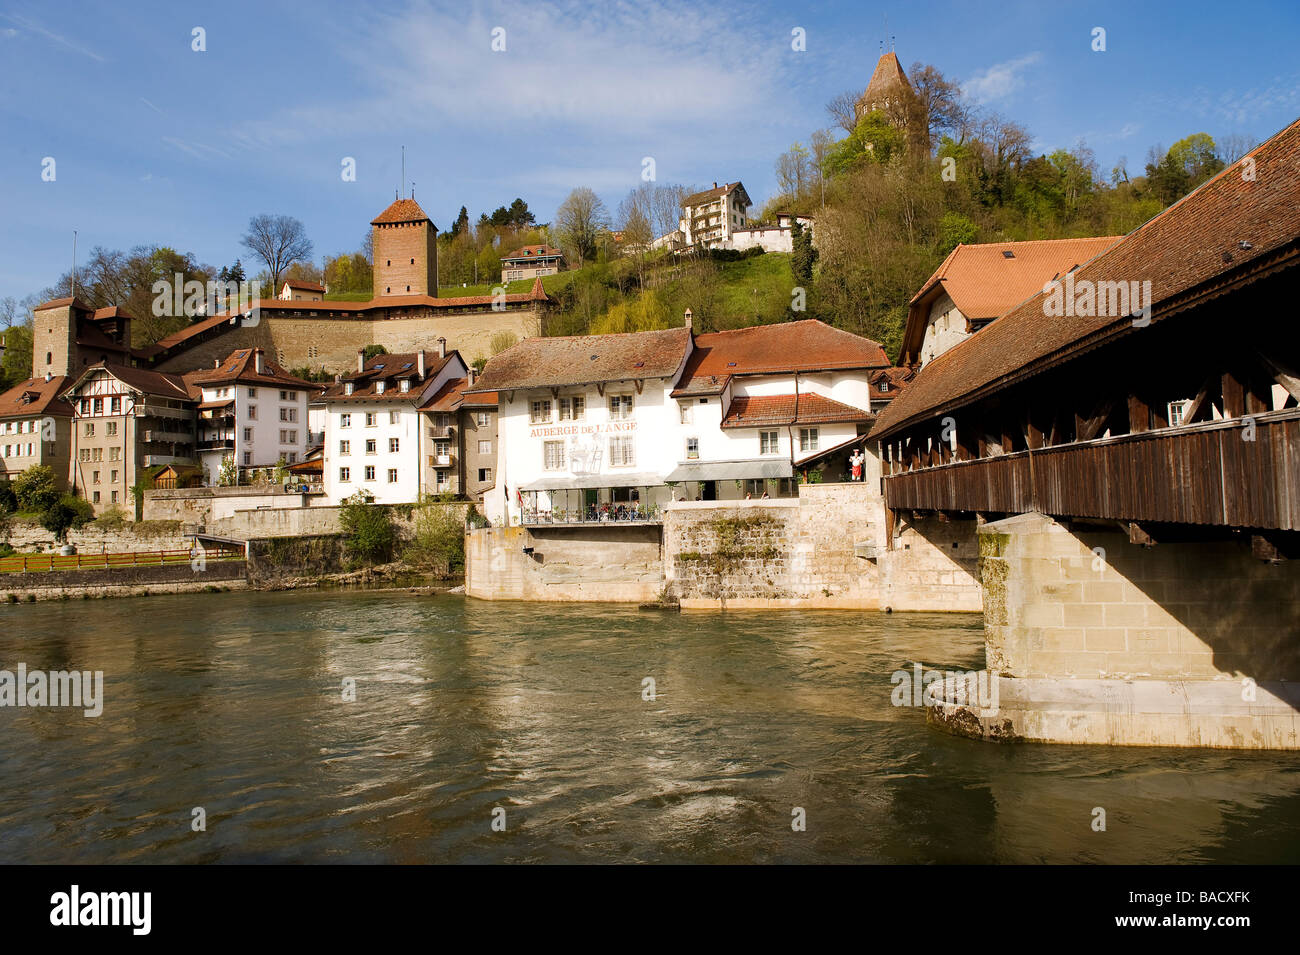 Switzerland, Canton of Fribourg, Fribourg, Sarine River (Saane River ...